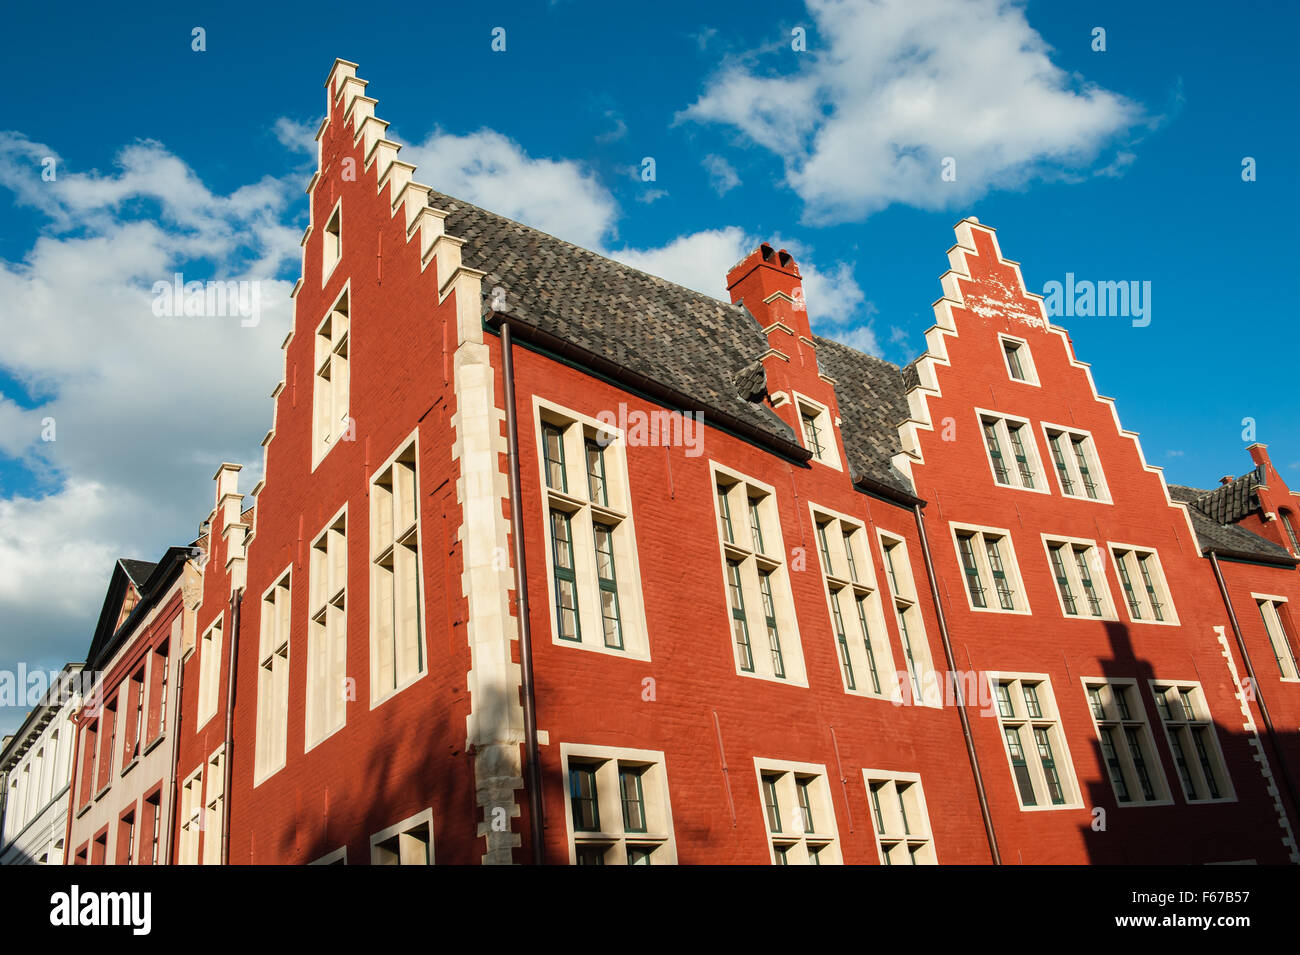 Red gable roof of a historic house in Ghent, Belgium. - Stock Image